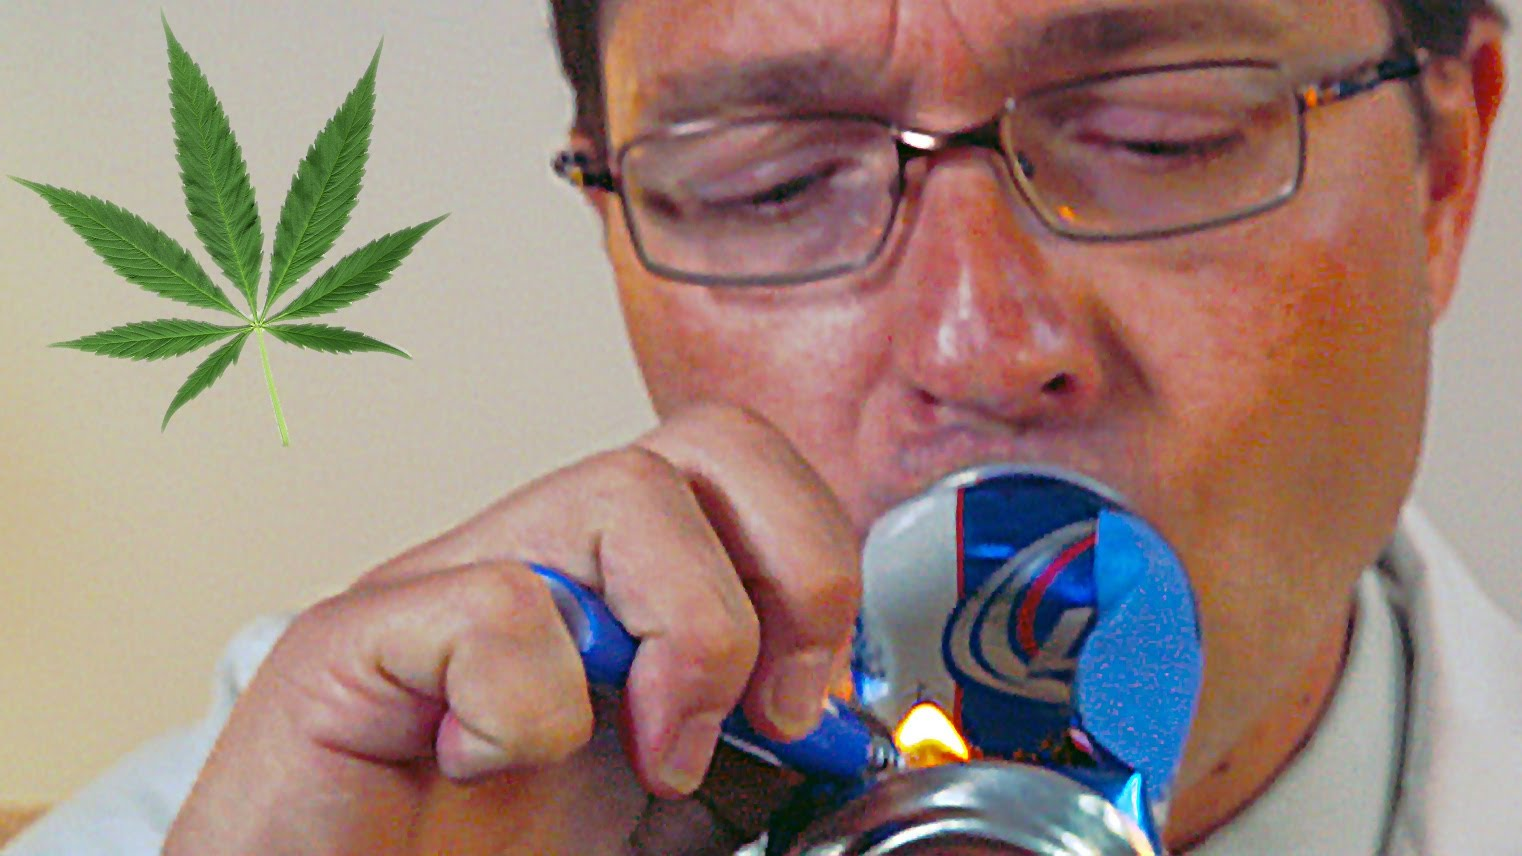 Aluminum Can Weed Pipe for the Zombie Apocalypse Marijuana Tips & Tricks with Bogart #20